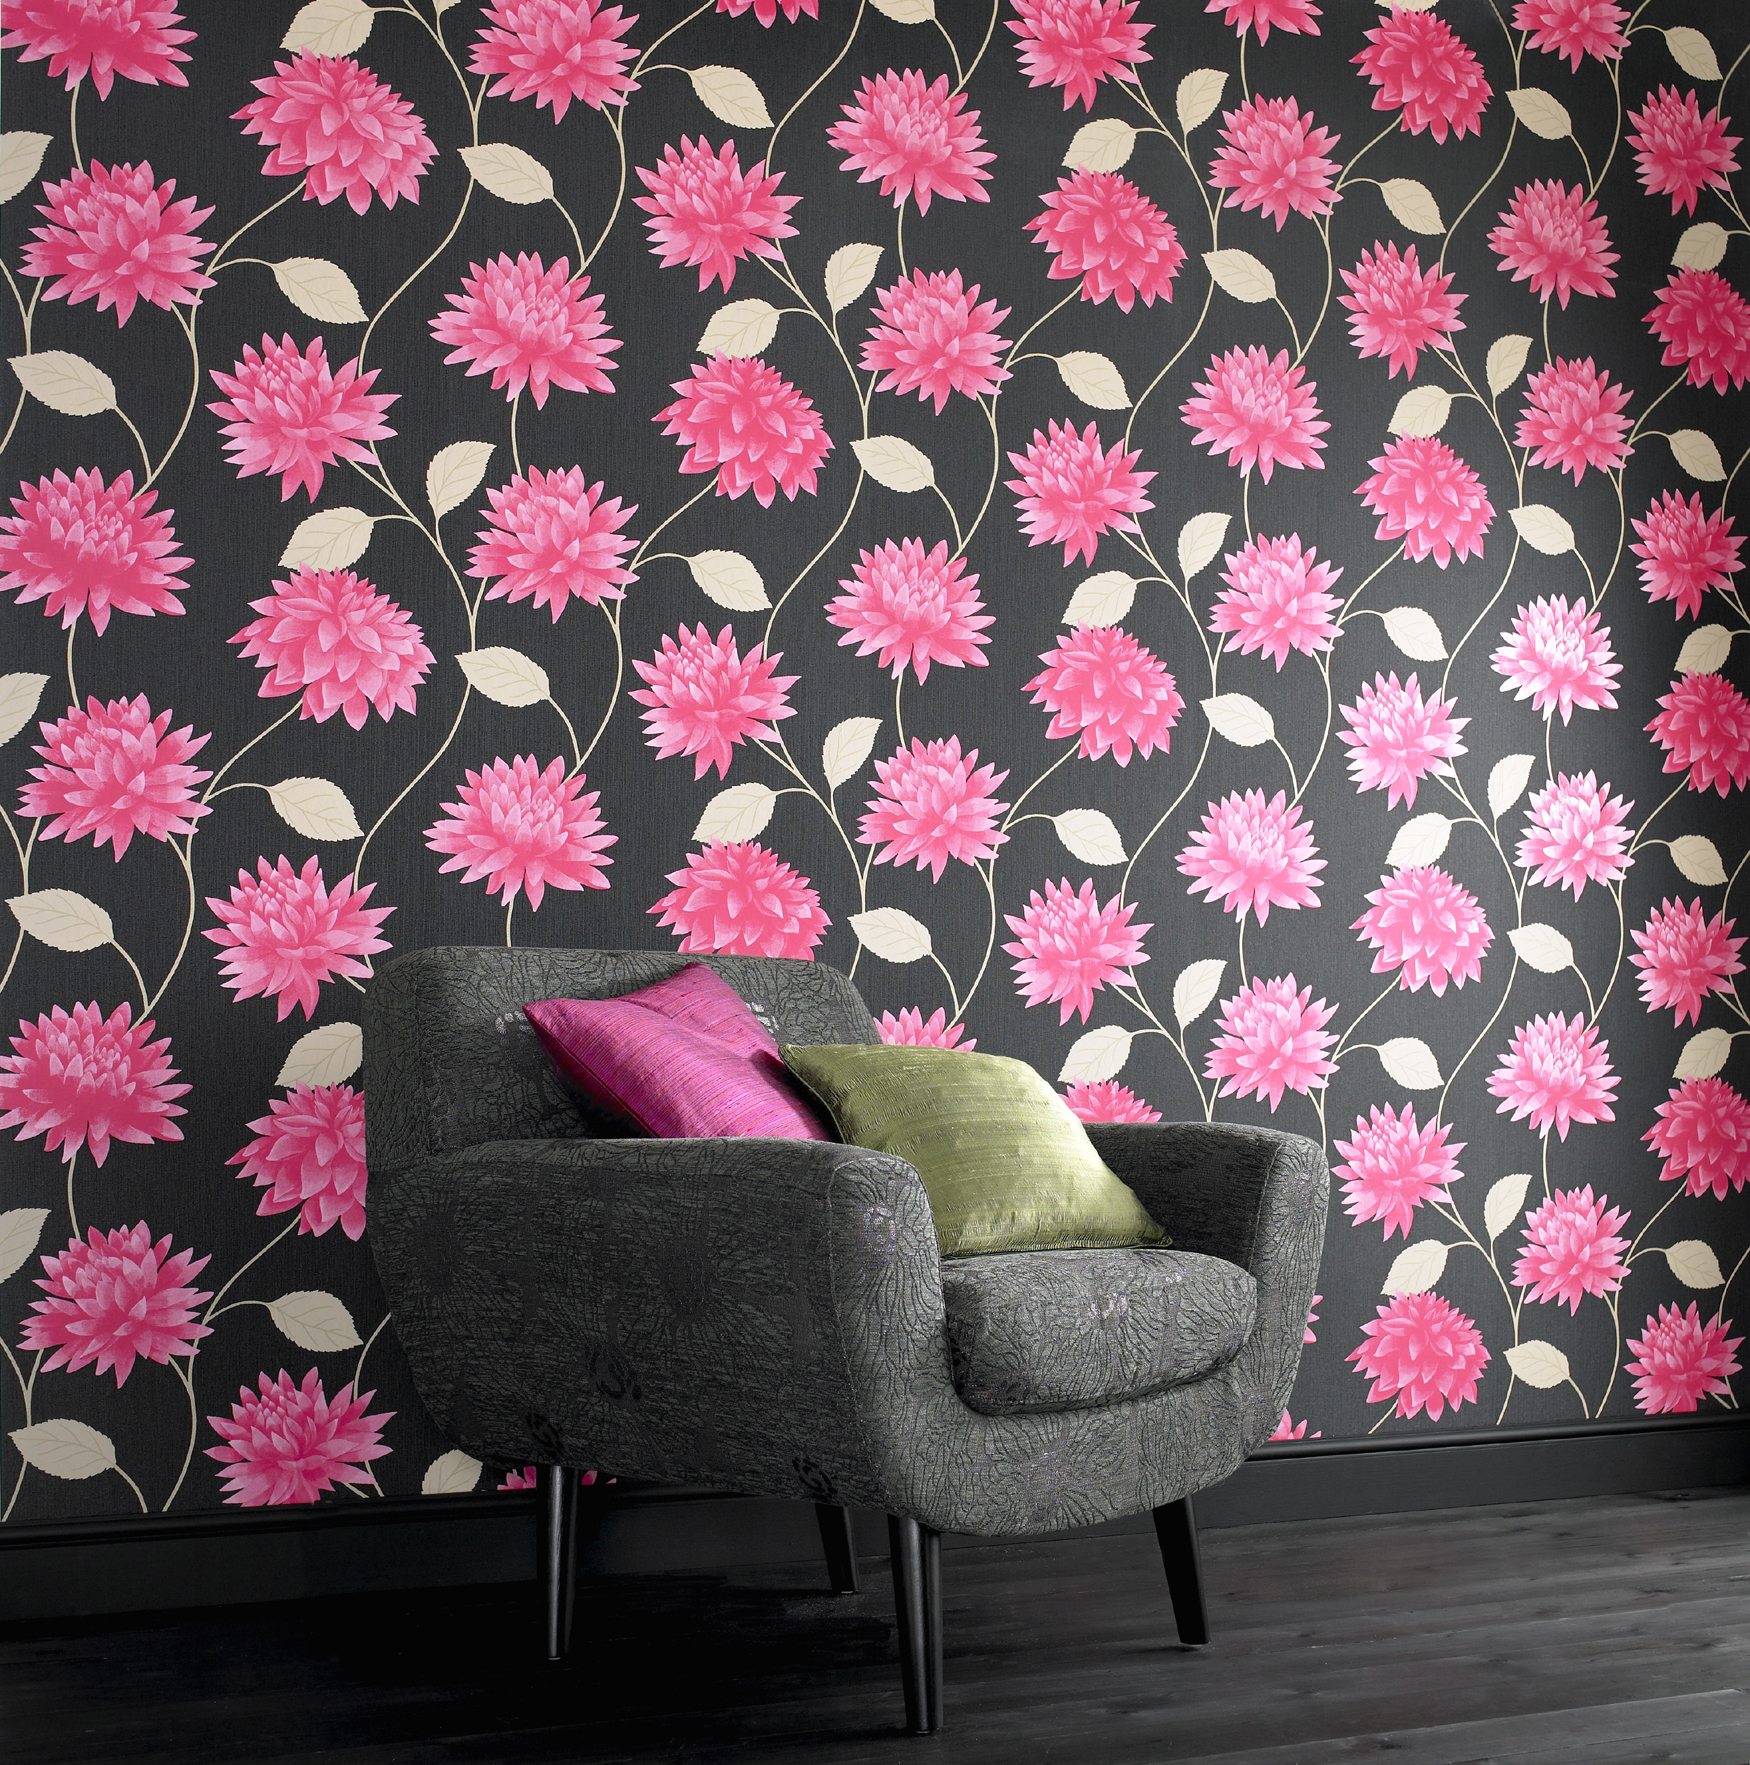 Superfresco Easy Romance Floral Blackpink Textured Wallpaper Was